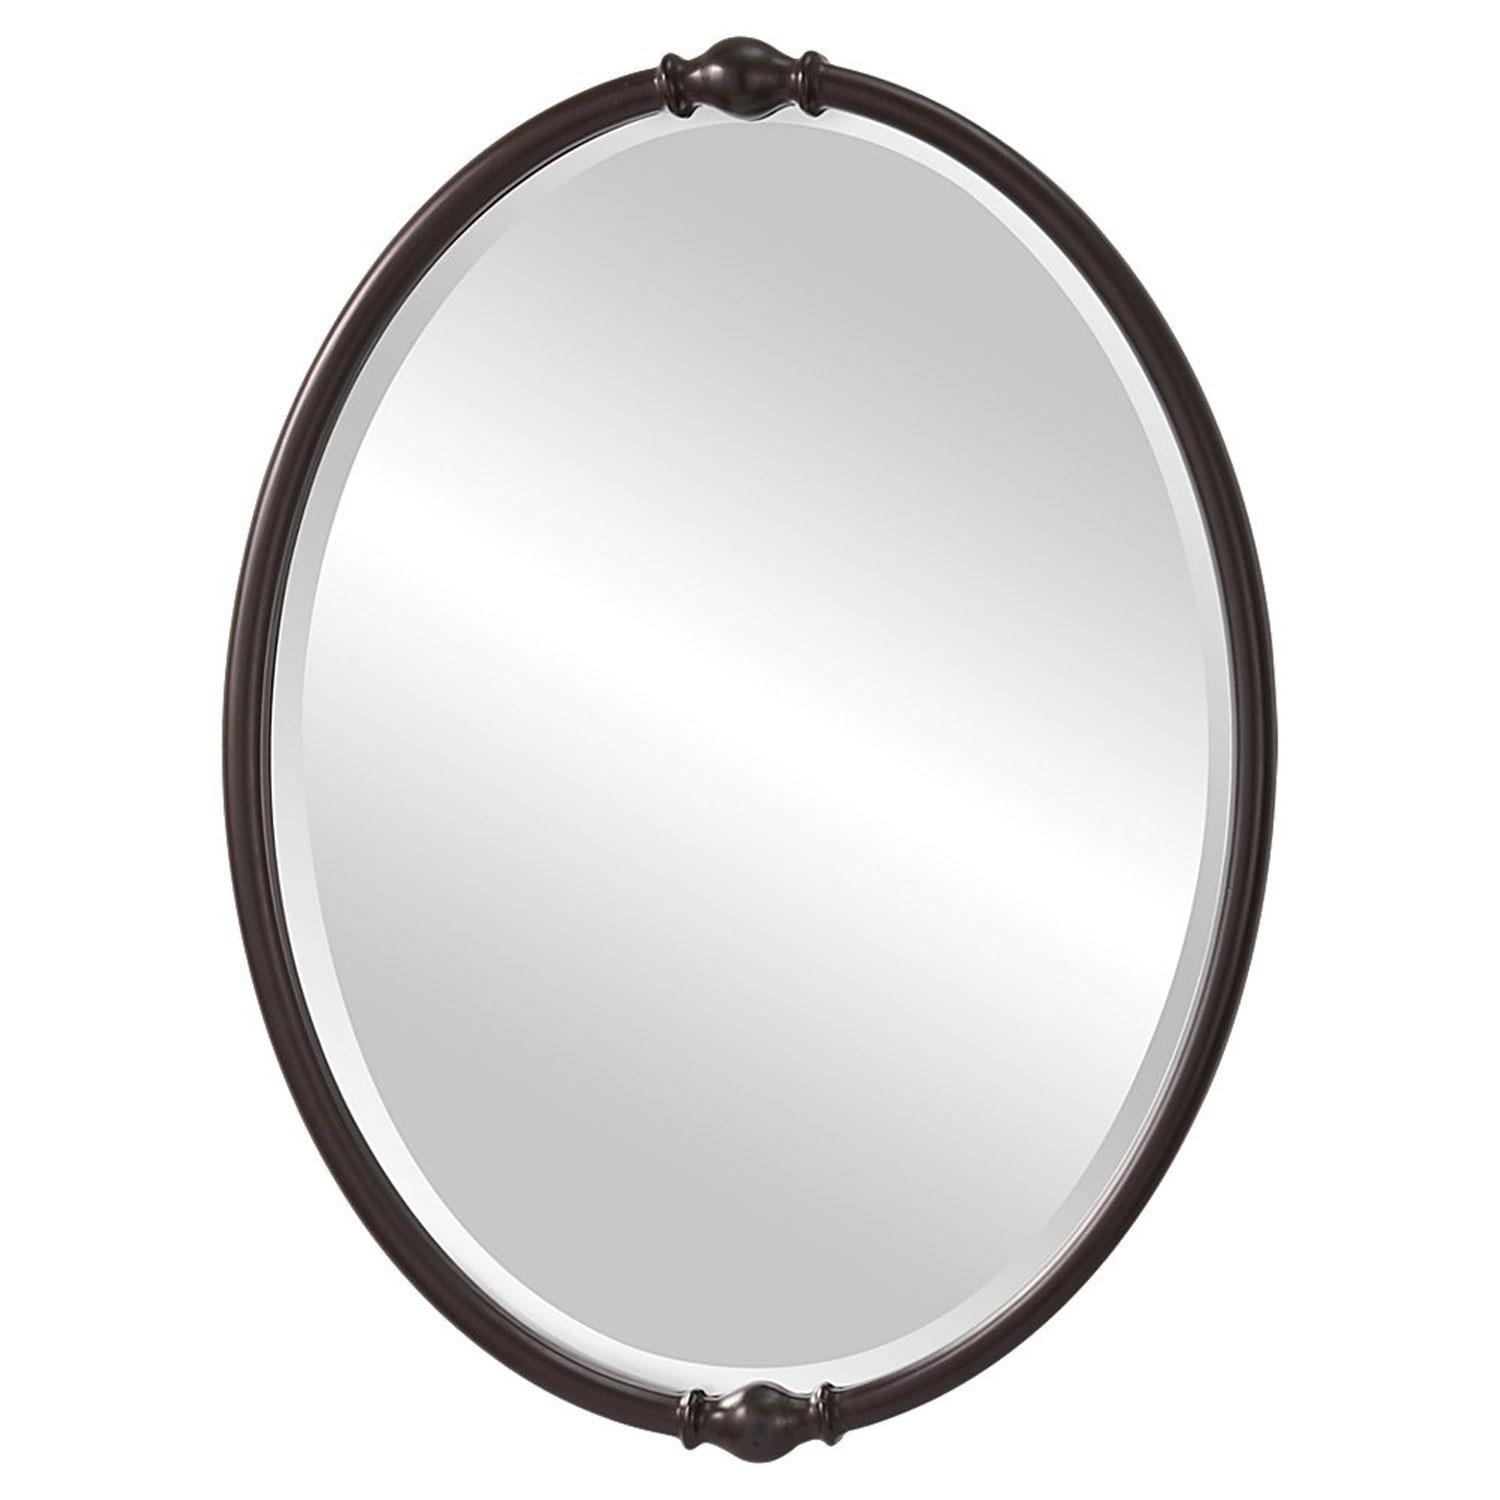 Jackie Oil Rubbed Bronze Mirror Feiss Wall Mirror Mirrors Home Decor Inside Bronze Wall Mirror (View 10 of 20)